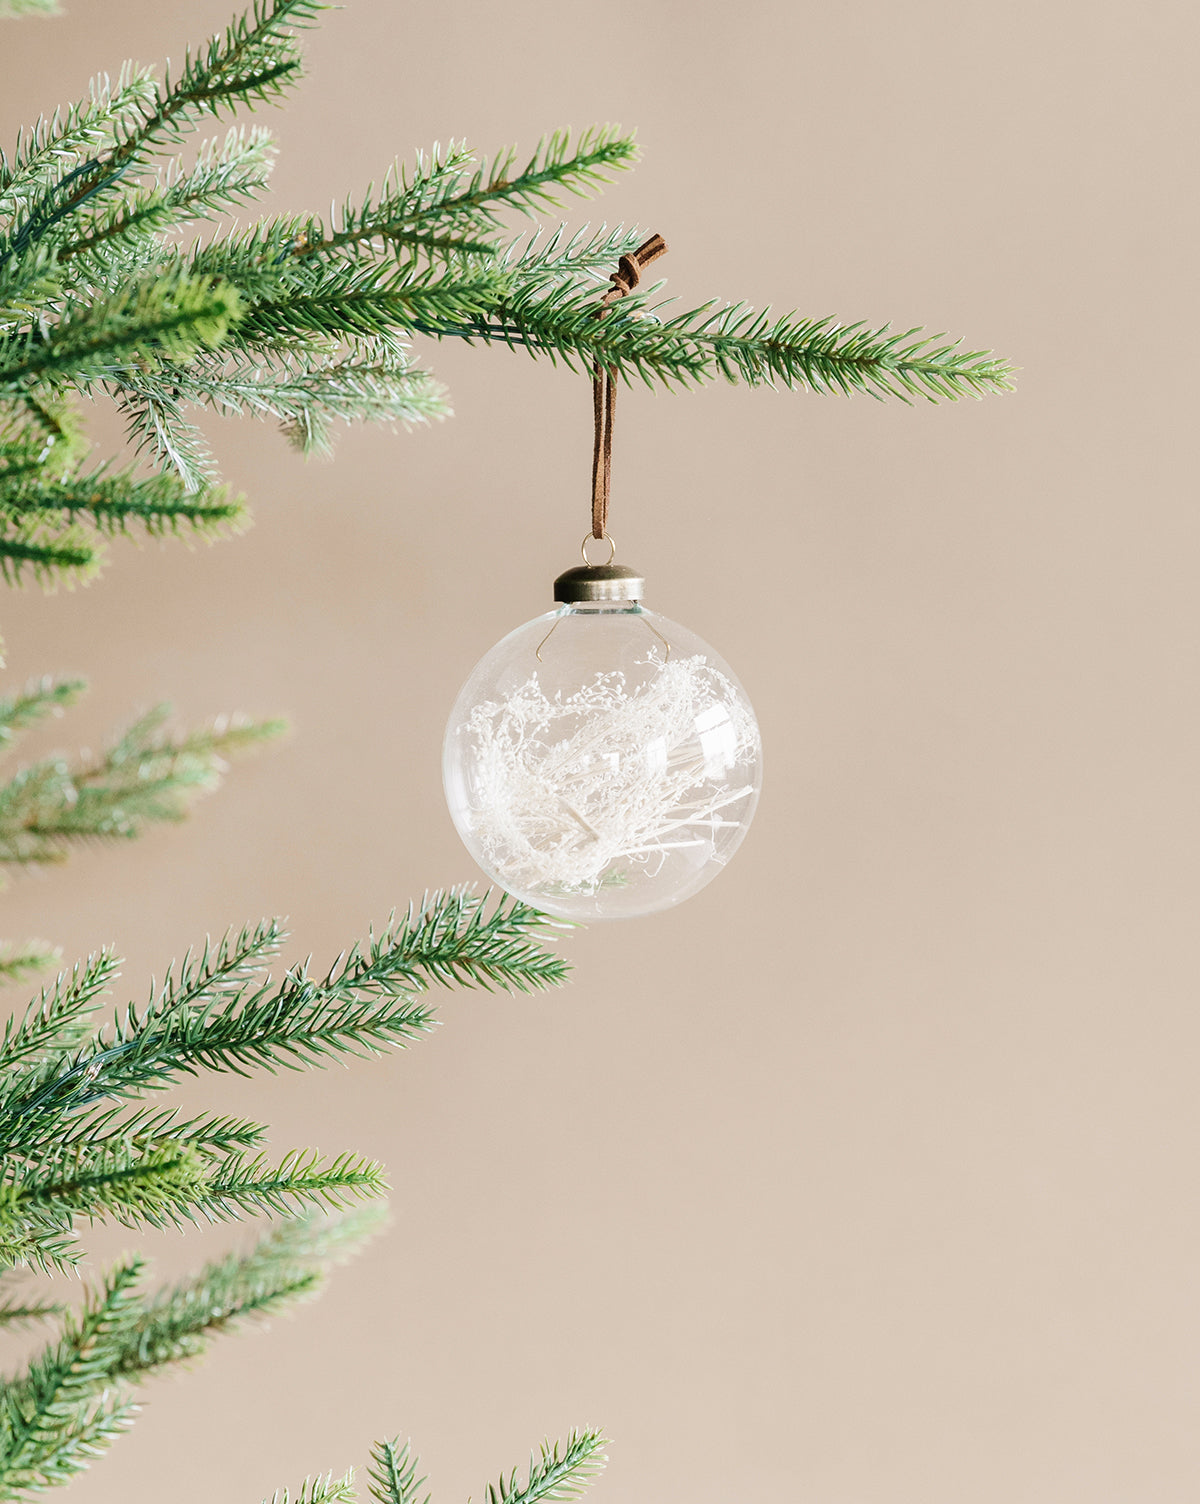 Foraged Grass & Glass Ornament